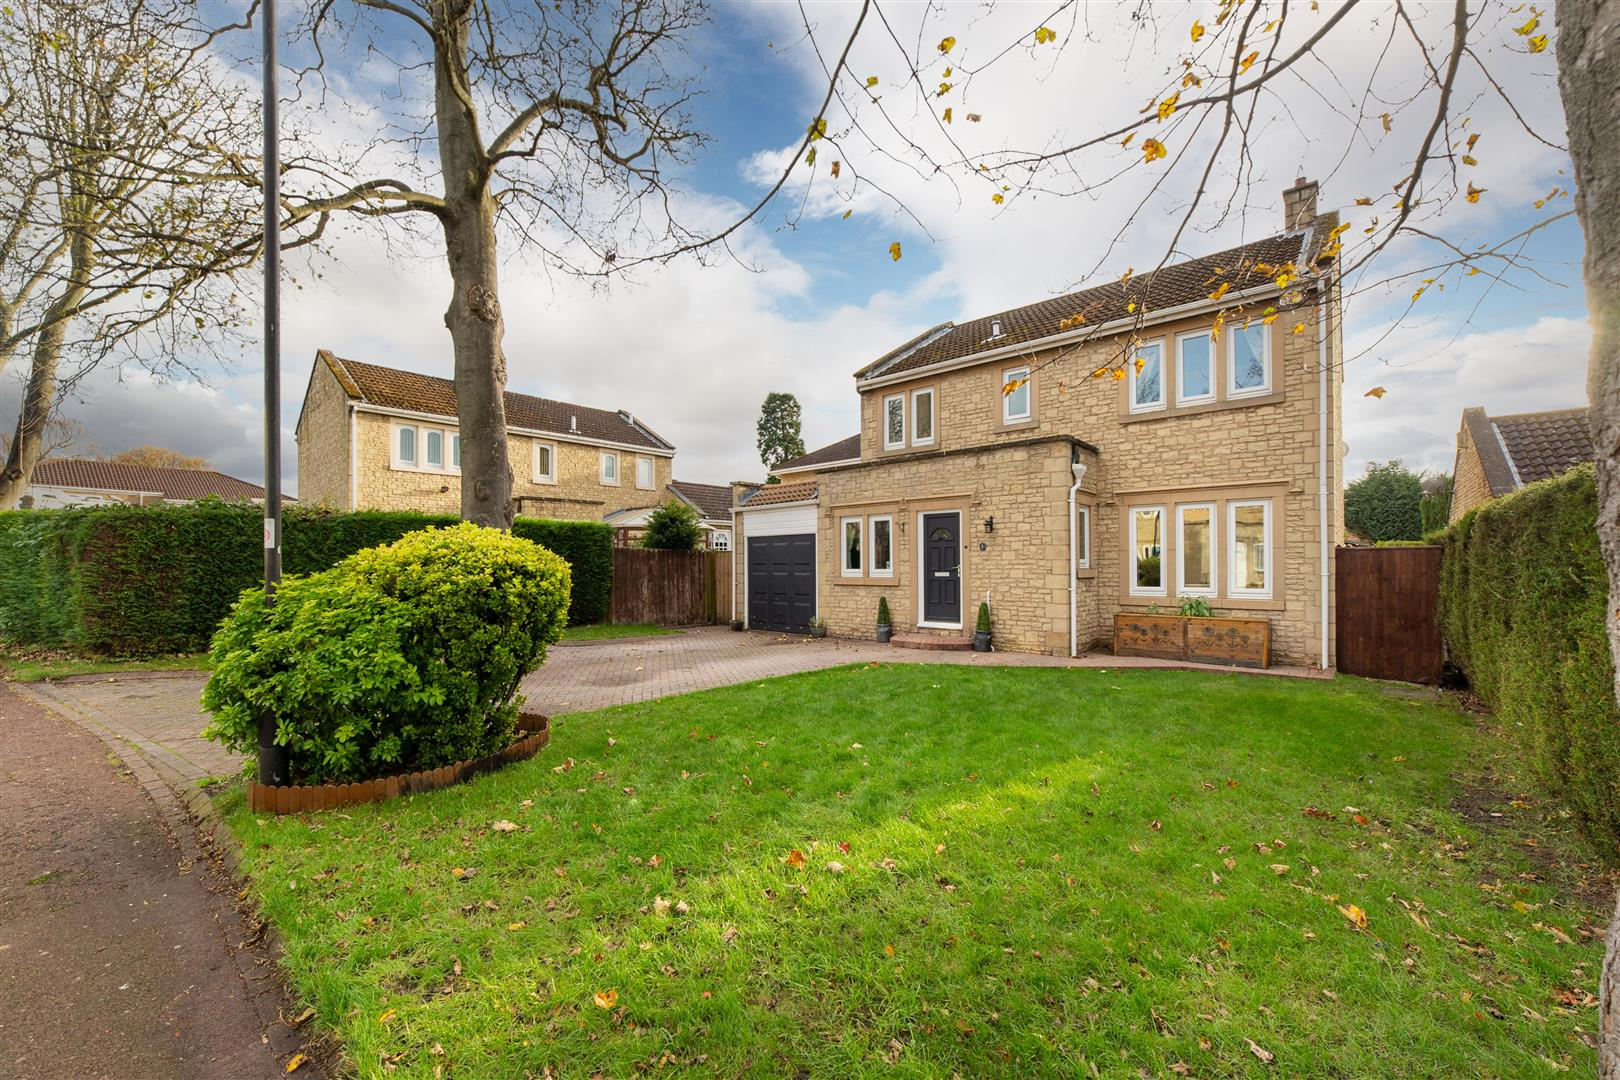 4 bed detached house for sale in Juniper Close, Newcastle Upon Tyne - Property Image 1